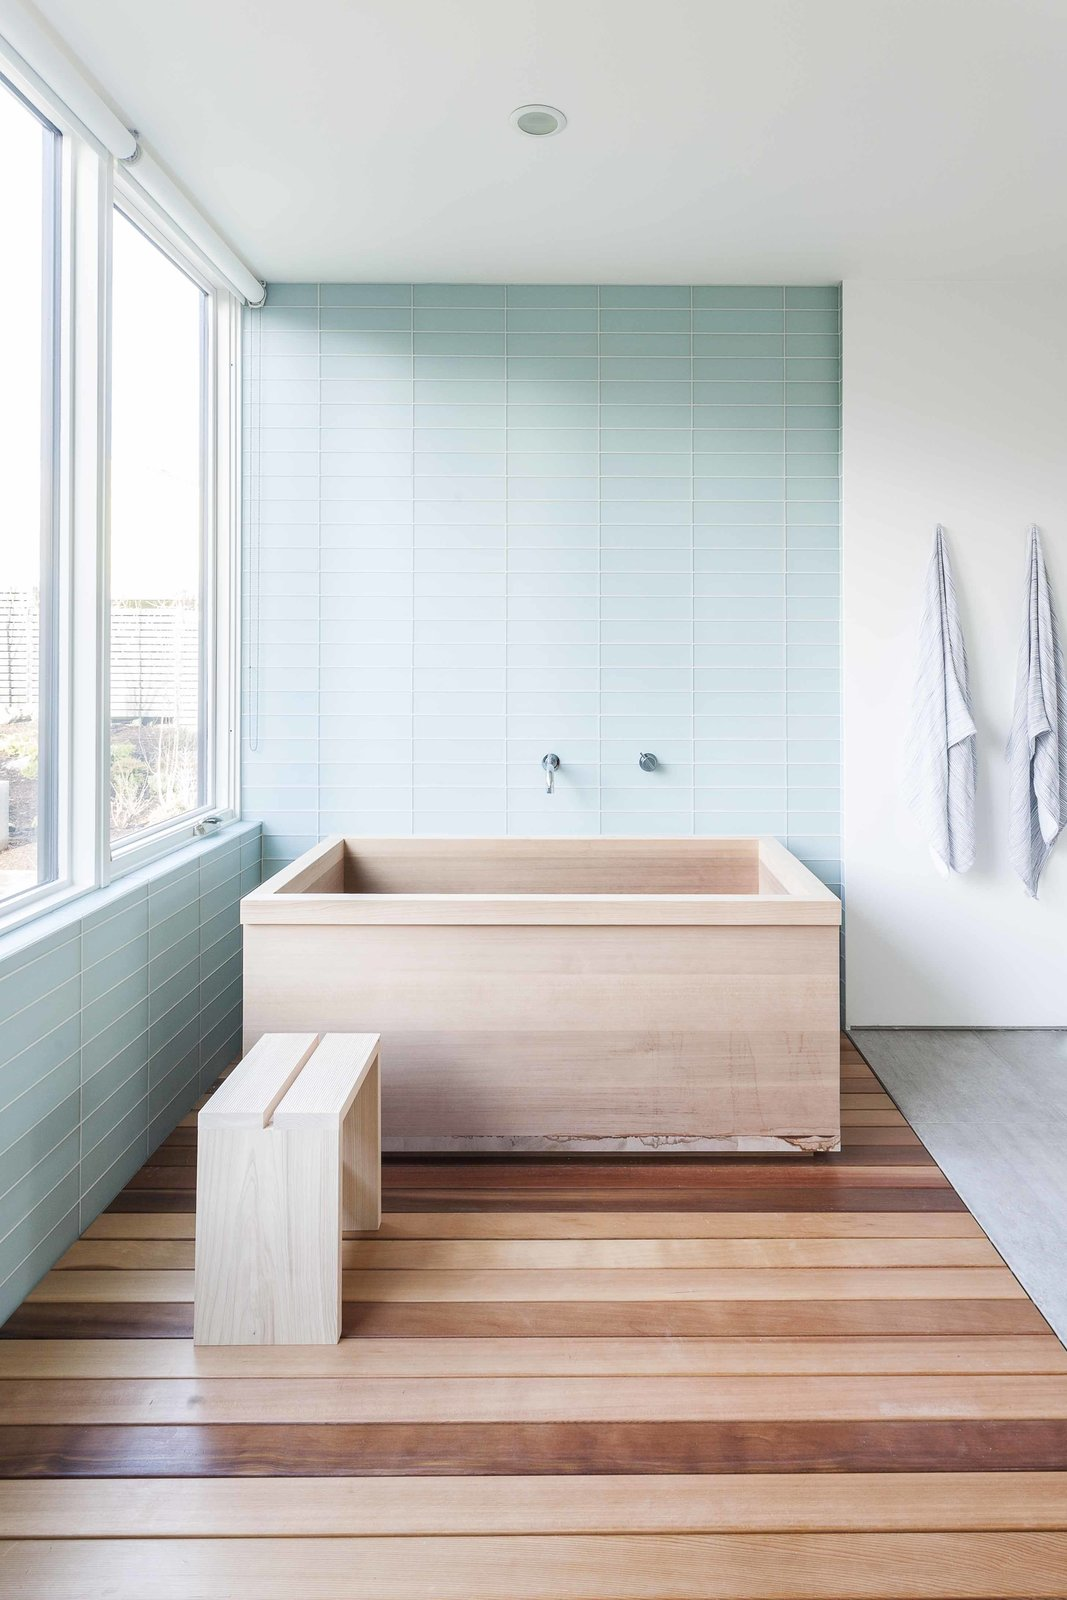 japanese bathroom tiles 10 minimalist bathroom ideas dwell 13289